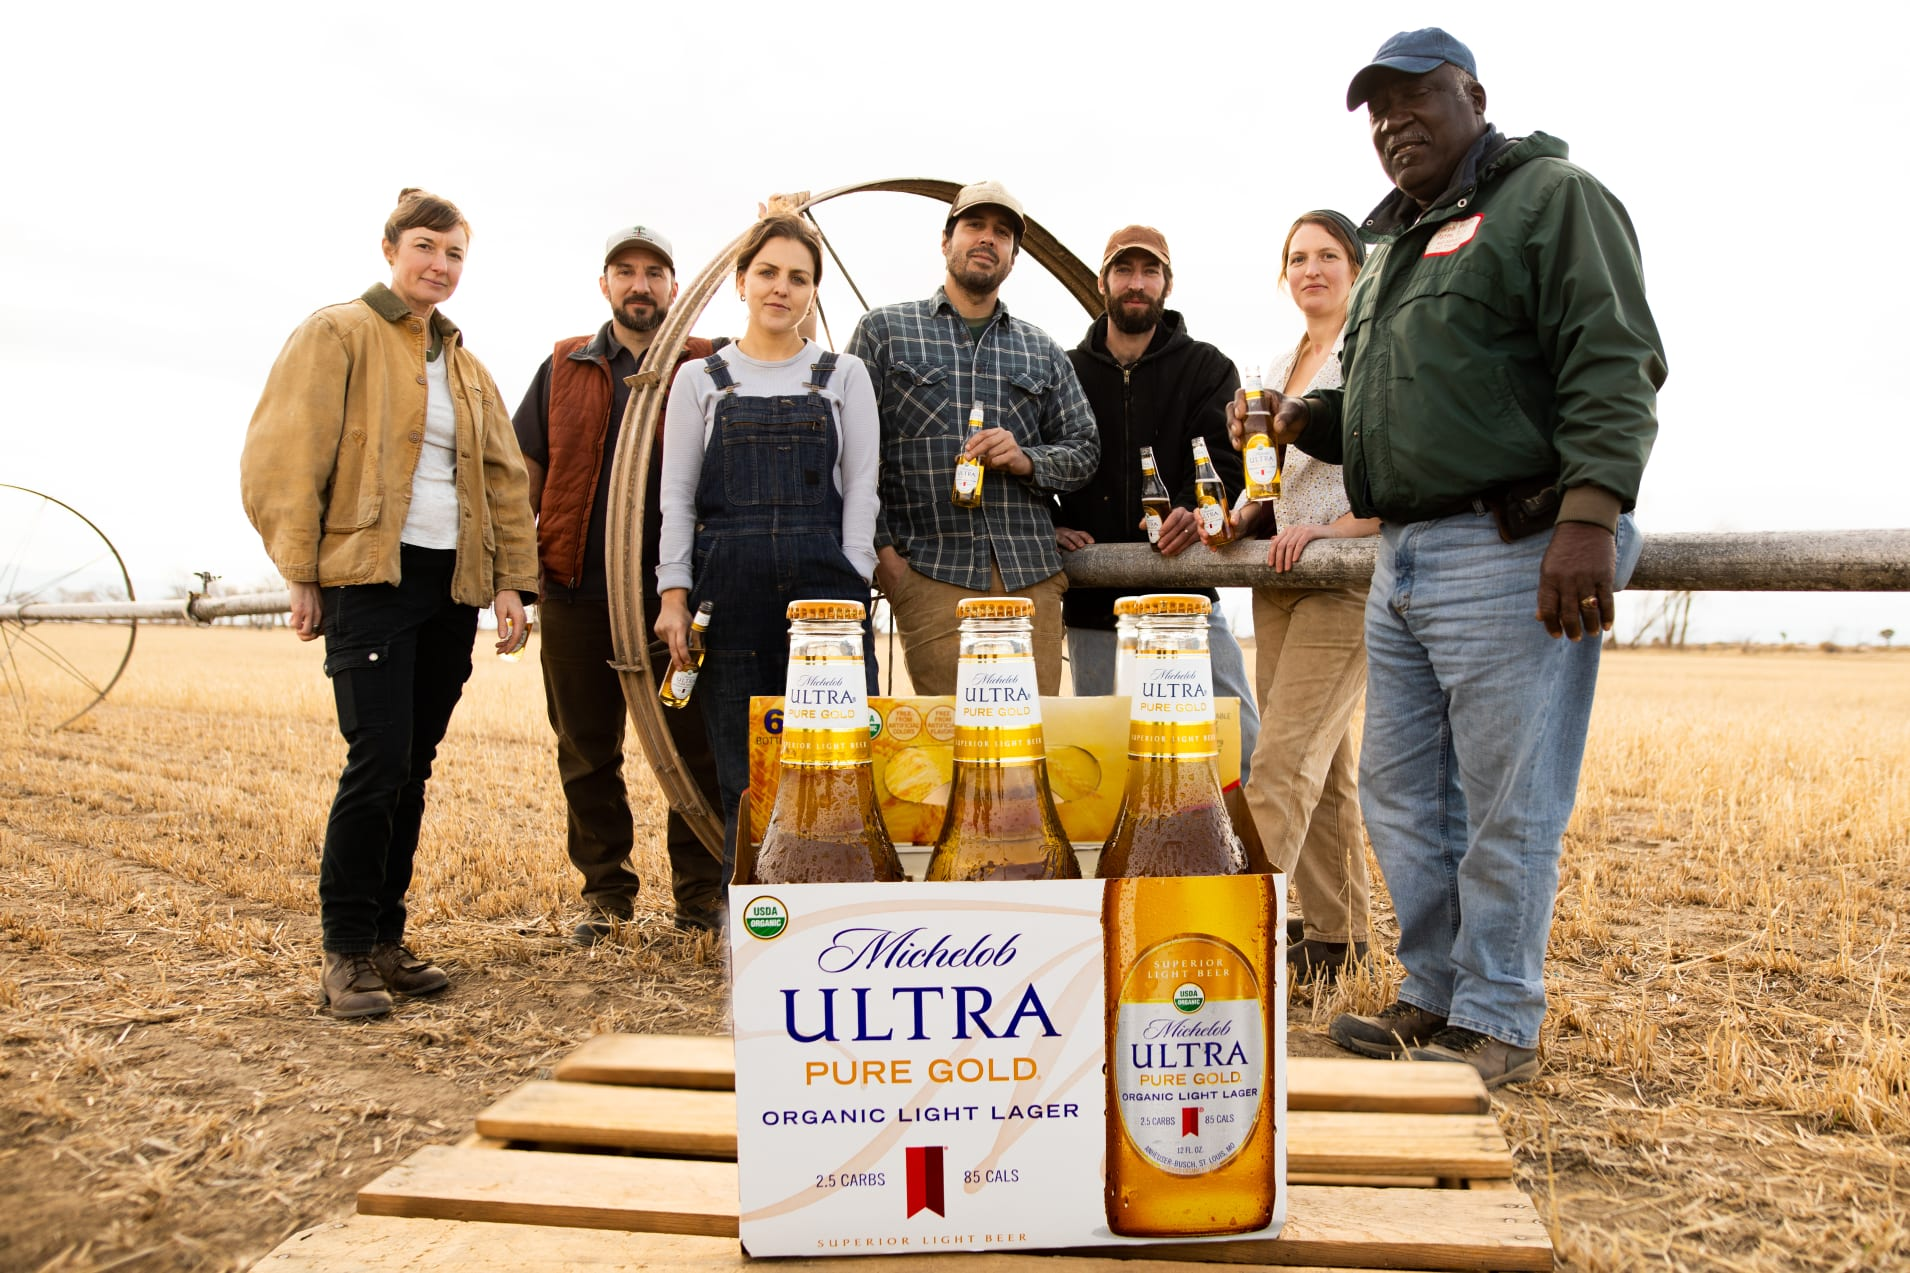 A promotional image highlights the potential impact of Michelob ULTRA Pure Gold in farm country